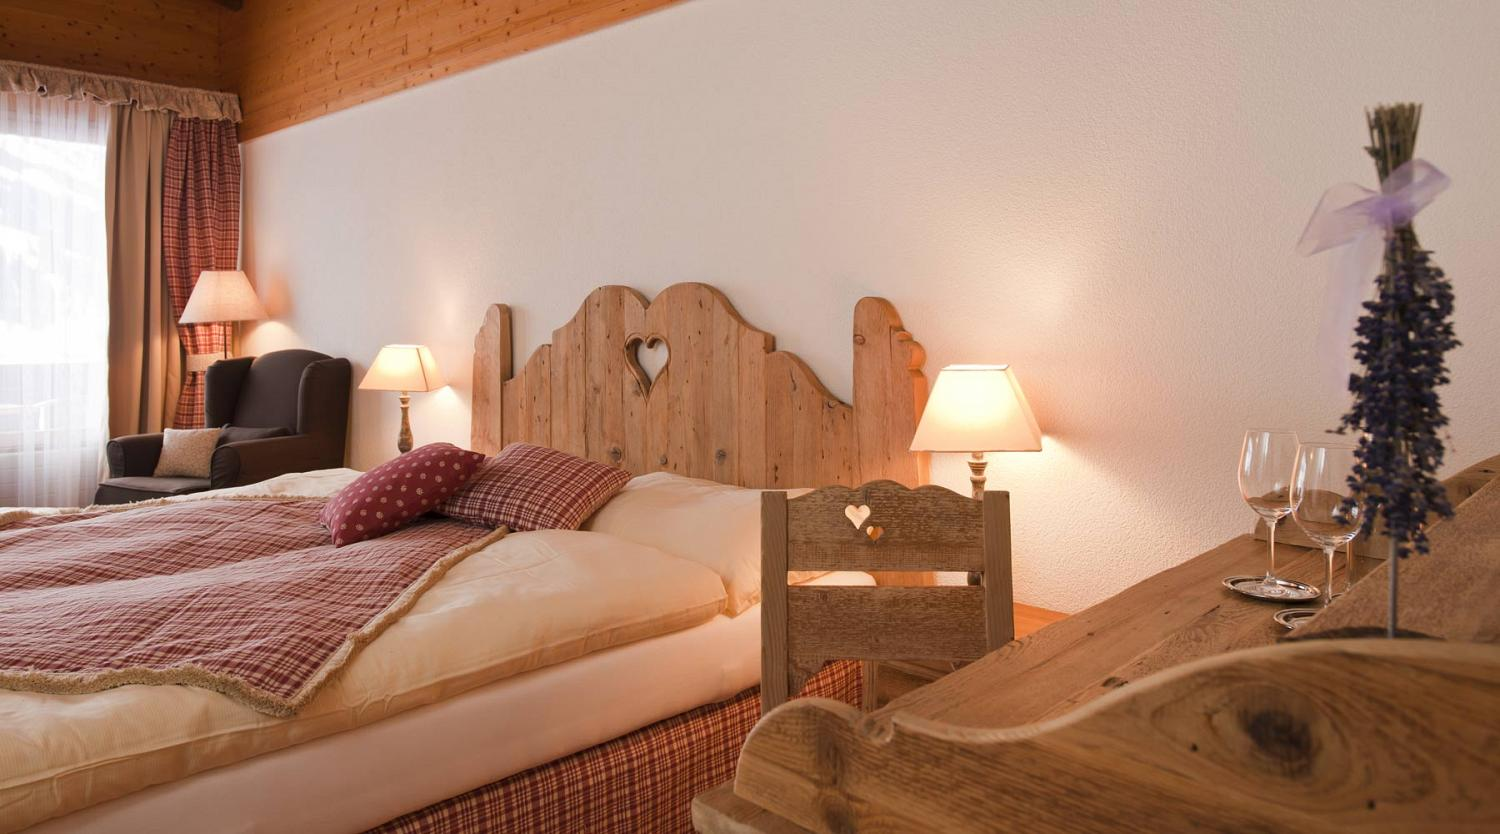 Hotel Beau-Site - Boutique Chalet - rooms lookup 18